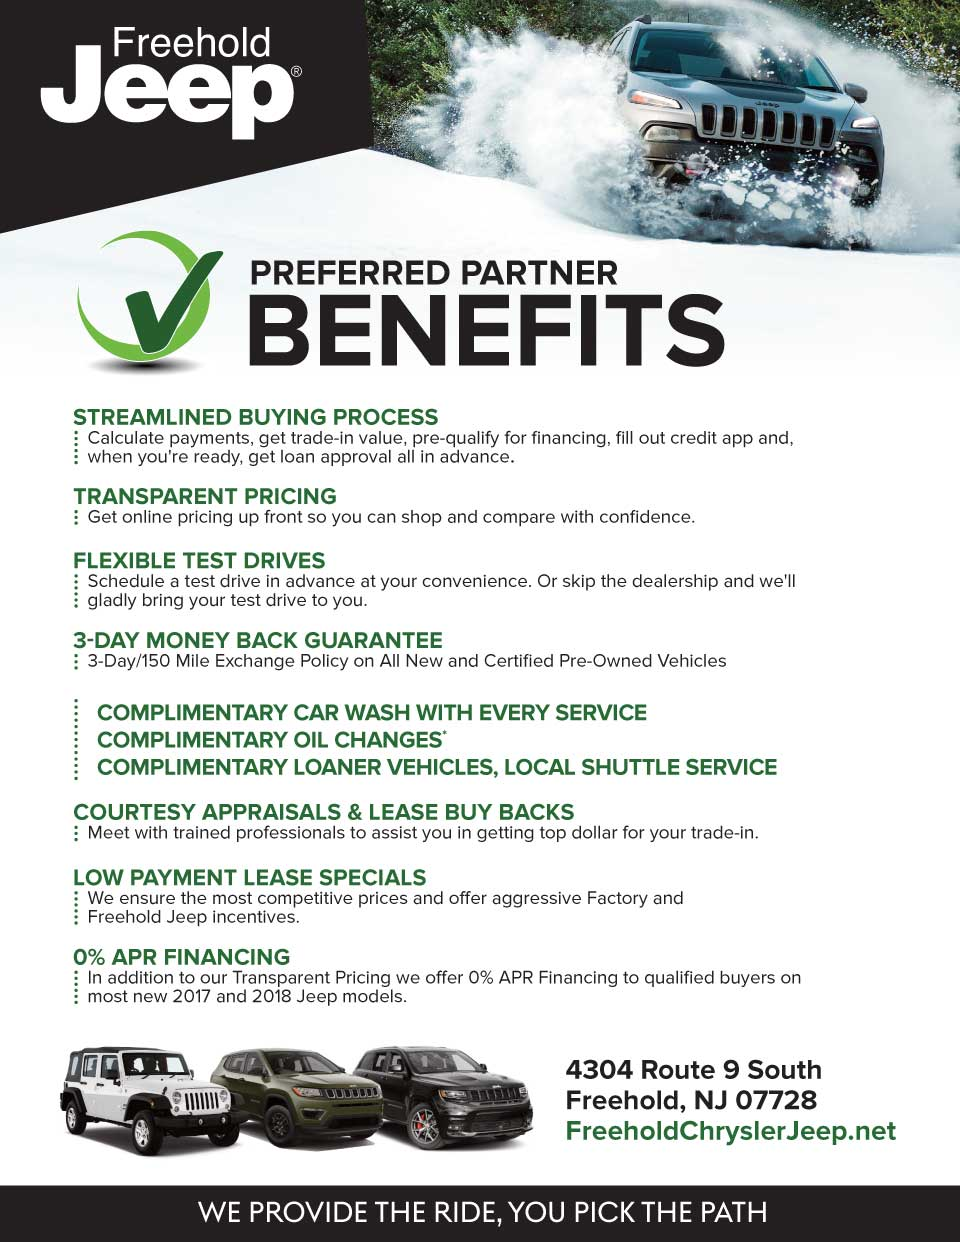 preFerreD parTner BeneFiTs - sTreamlineD Buying processCalculate payments, get trade-in value, pre-qualify for financing, fill out credit app and, when you're ready, get loan approval all in advance. - TransparenT pricingGet online pricing up front so you can shop and compare with confidence. - FlexiBle TesT DrivesSchedule a test drive in advance at your convenience. Or skip the dealership and we'll gladly bring your test drive to you. - 3-Day money Back guaranTee3-Day/150 Mile Exchange Policy on All New and Certified Pre-Owned Vehicles - complimenTary car Wash WiTh every servicecomplimenTary oil changes*complimenTary loaner vehicles, local shuTTle service - courTesy appraisals & lease Buy BacksMeet with trained professionals to assist you in getting top dollar for your trade-in. - loW paymenT lease specialsWe ensure the most competitive prices and offer aggressive Factory and Freehold Jeep incentives. - 0% apr Financing In addition to our Transparent Pricing we offer 0% APR Financing to qualified buyers on most new 2017 and 2018 Jeep models.